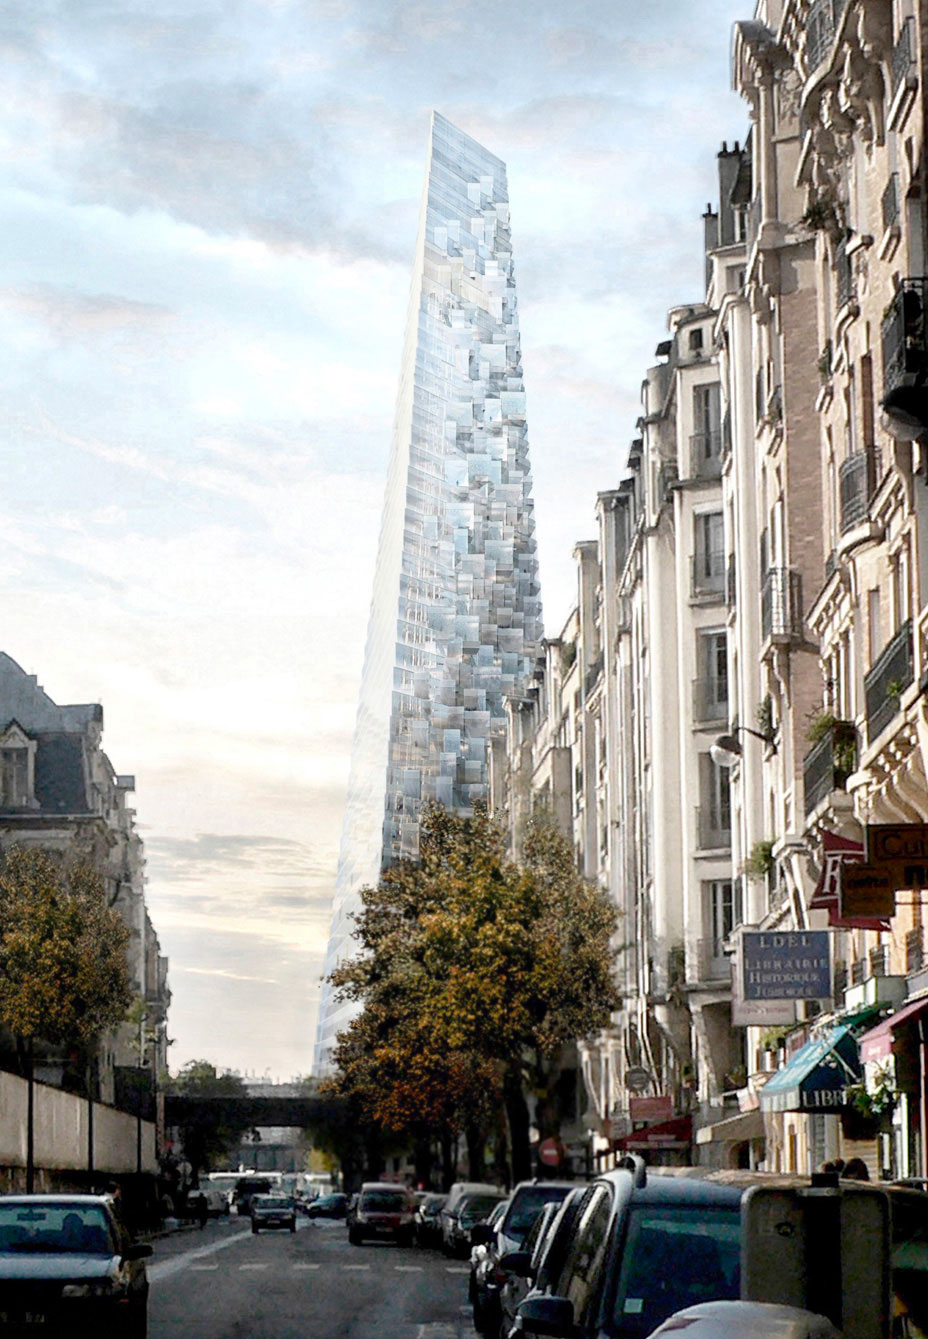 The Tour Triangle will become the city's third tallest building after the Eiffel Tower and the Montparnasse Tower.